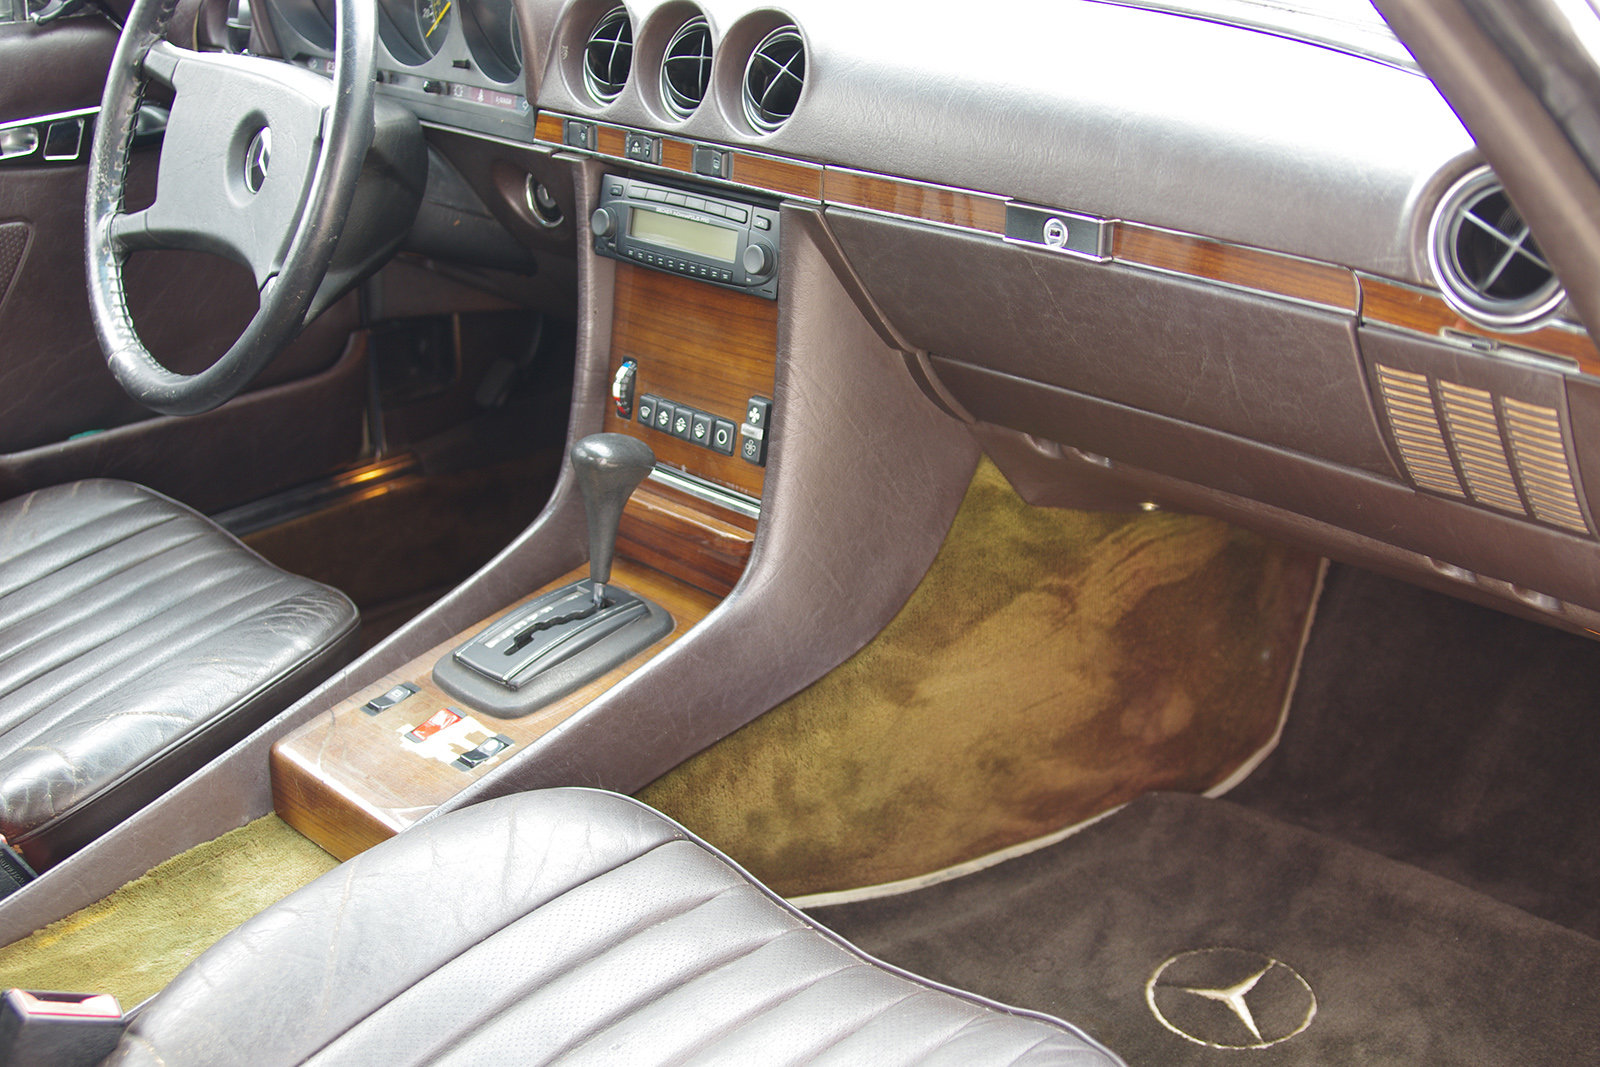 1982 Mercedes-Benz 380 SL - R 107 - partially restored SOLD (picture 4 of 6)